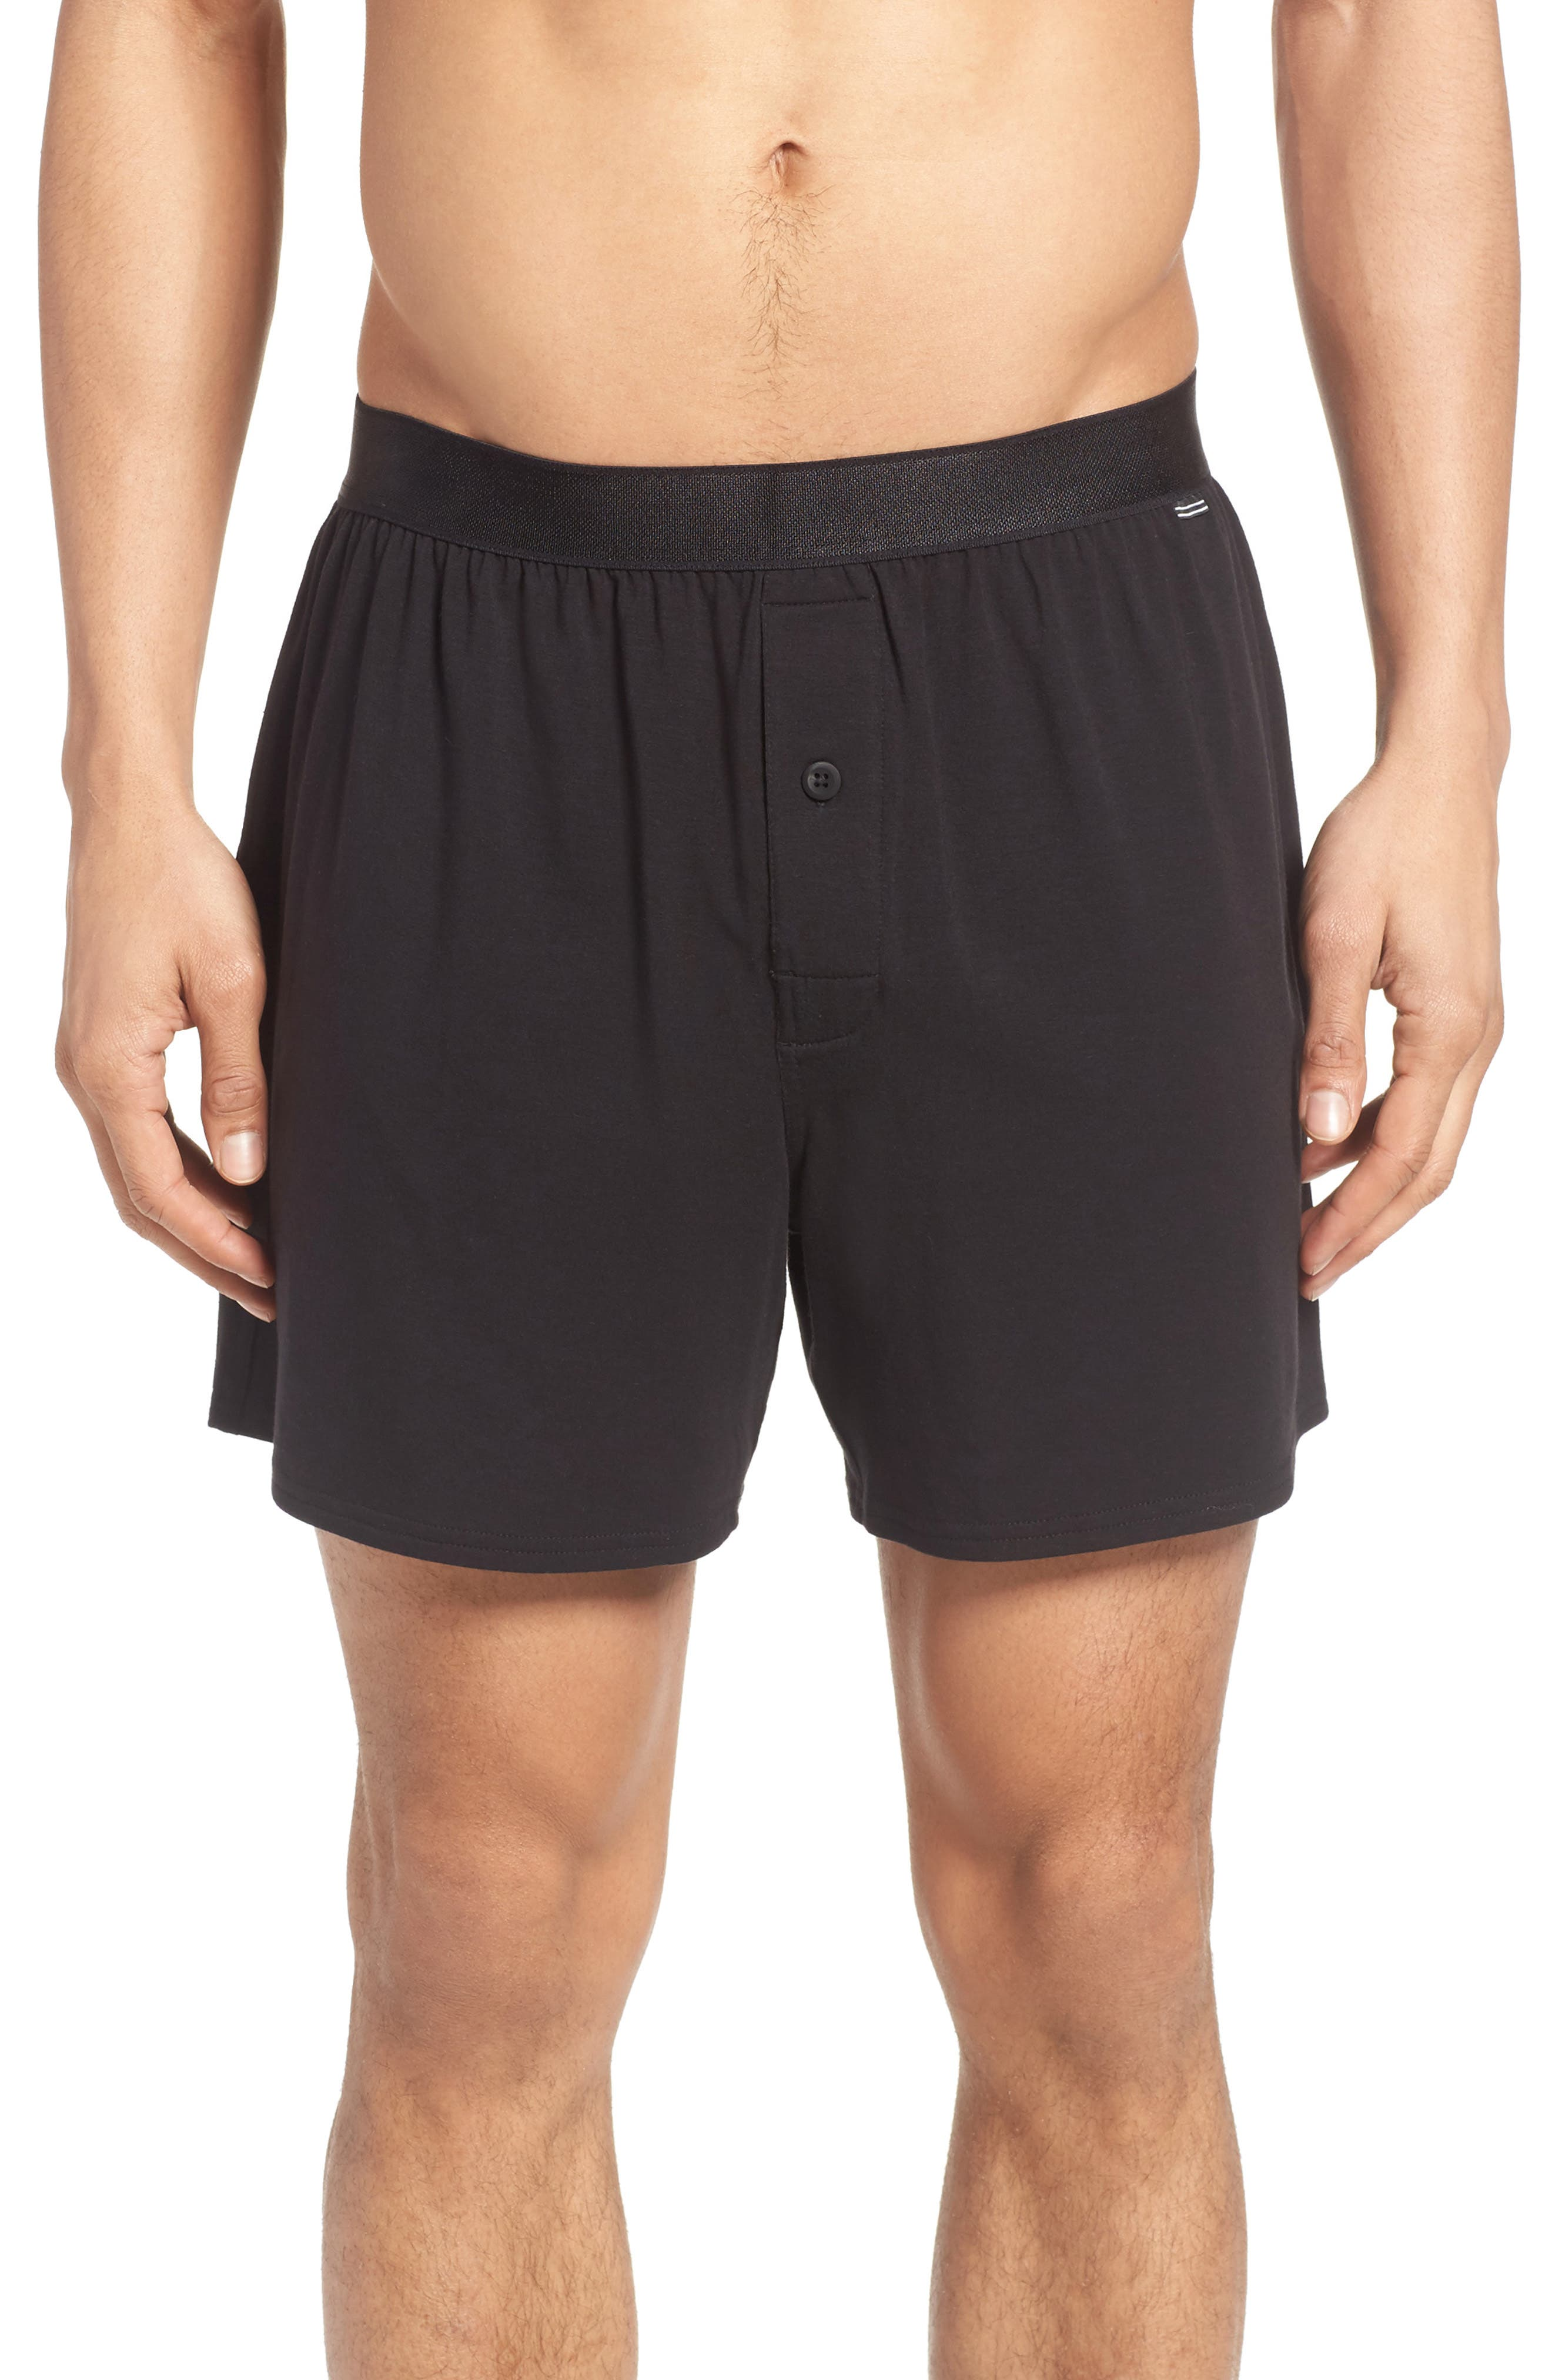 Nordstrom Men's Shop Micro Modal Blend Knit Boxers